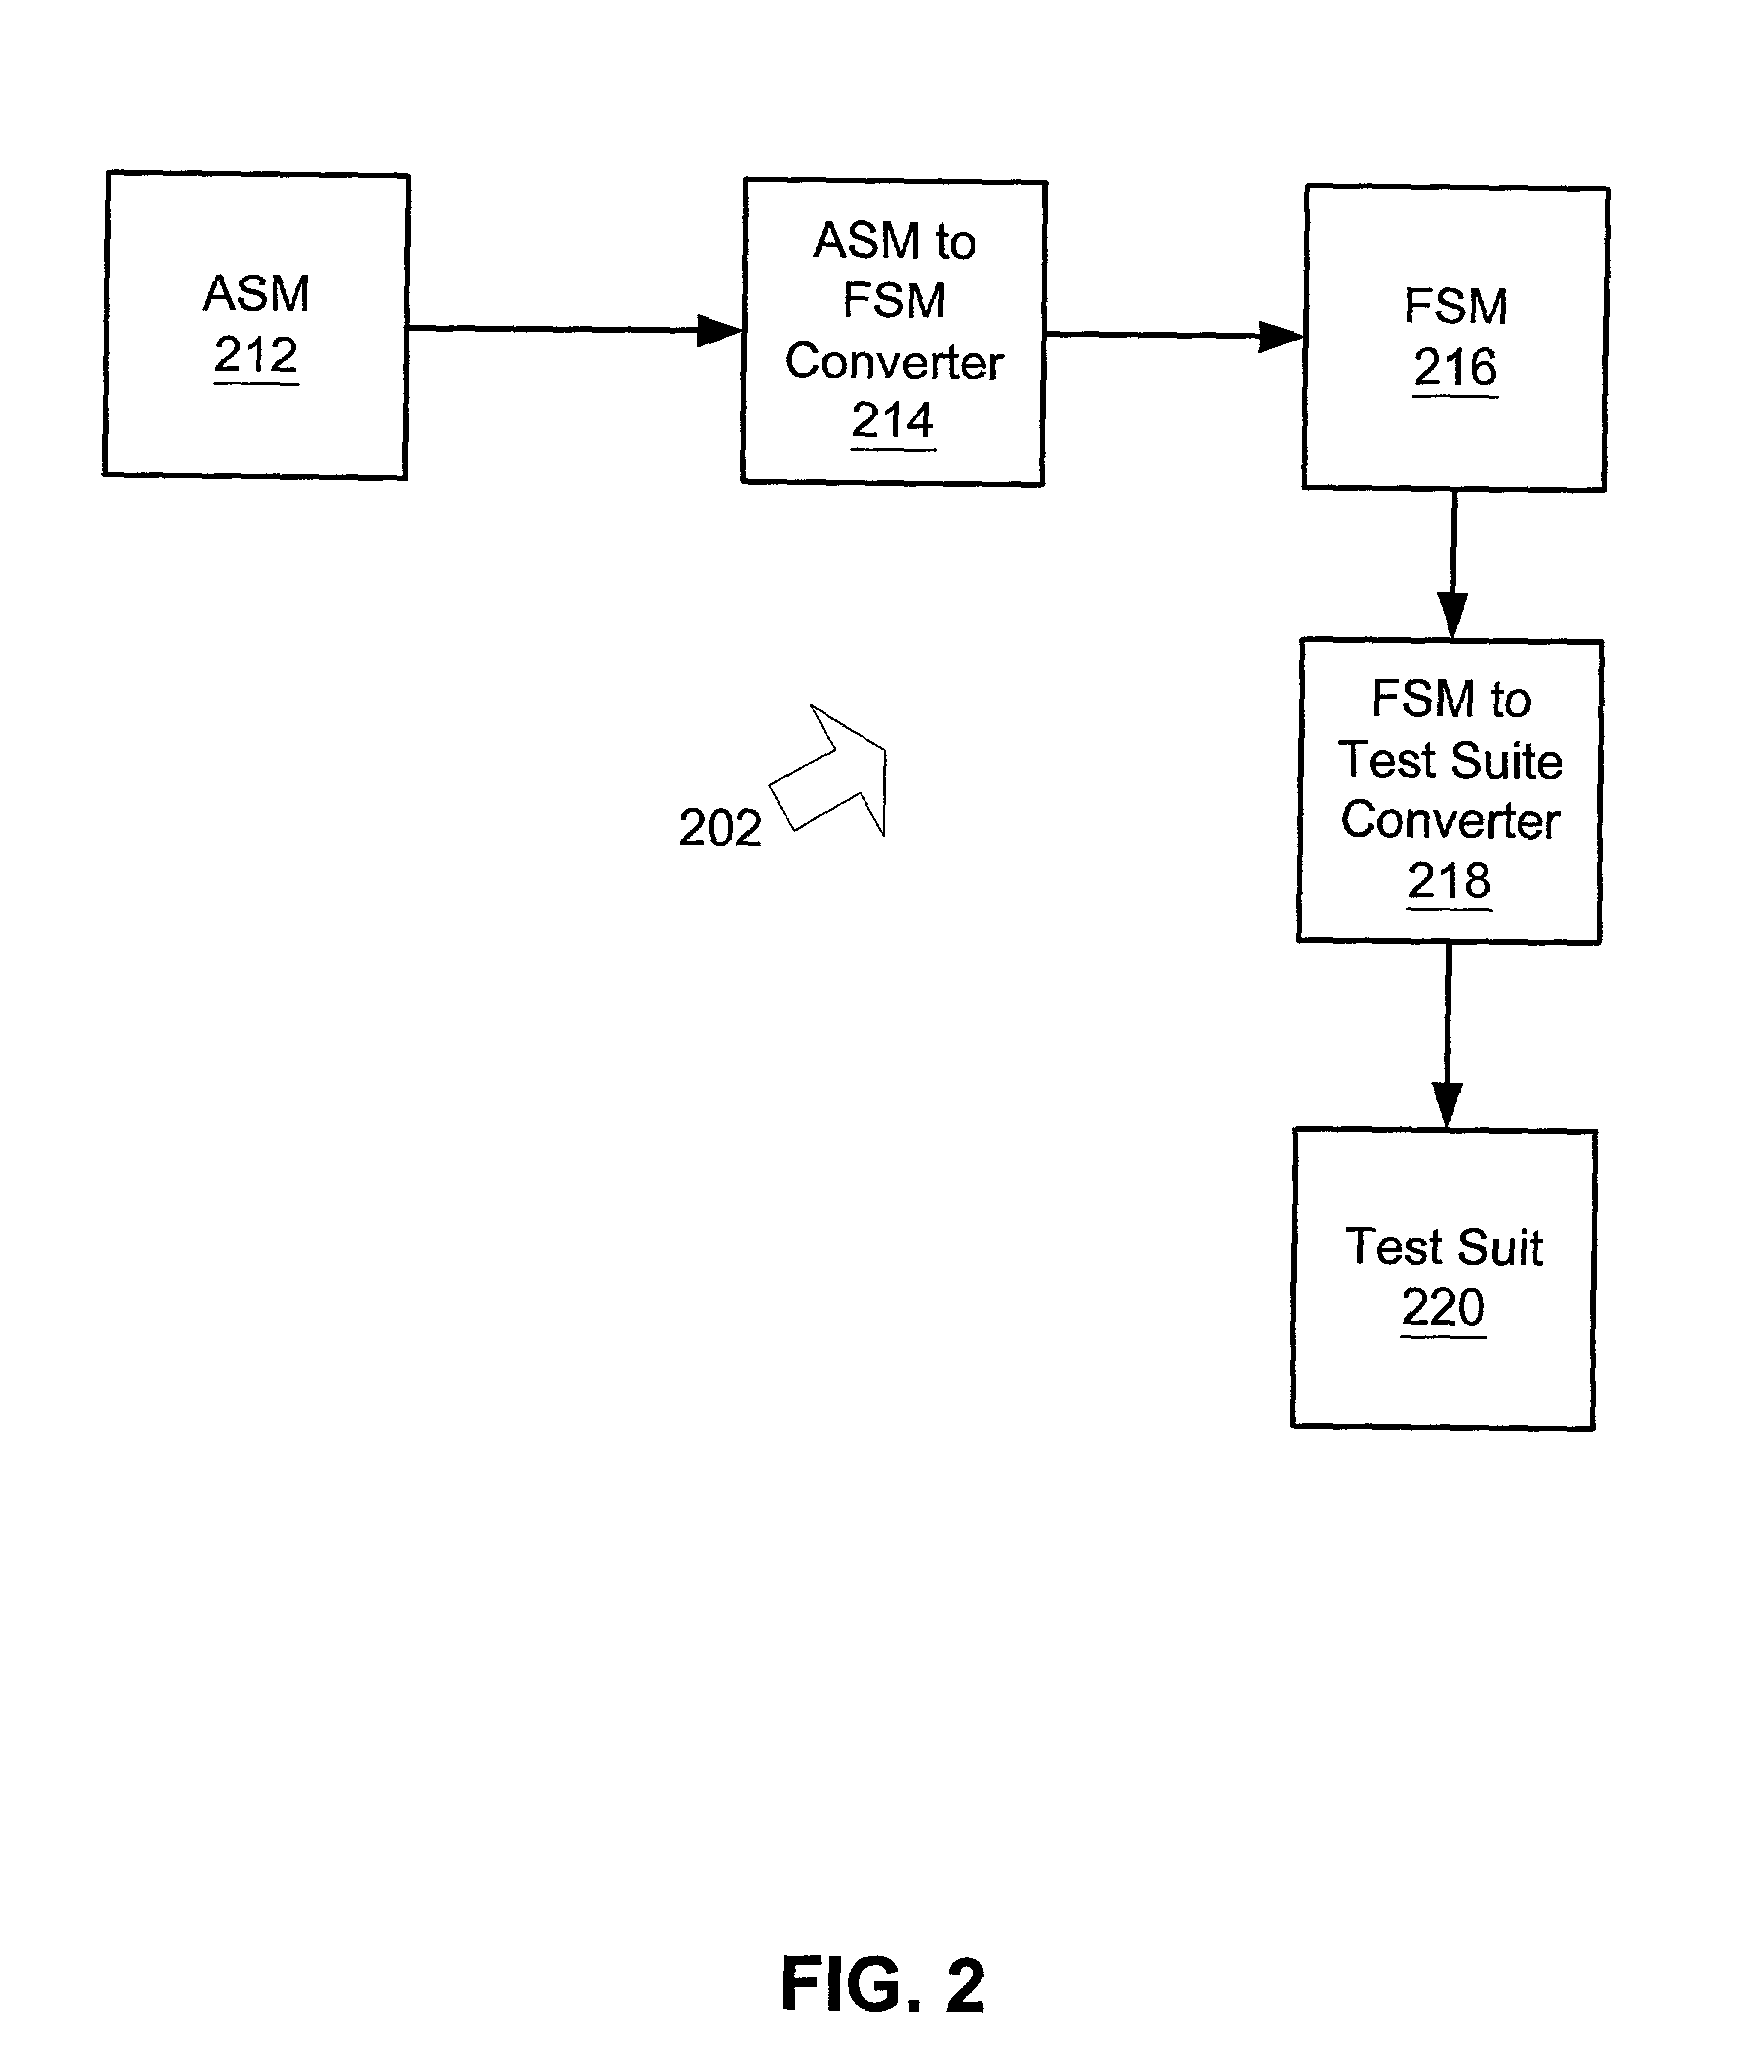 hight resolution of draw state machine models of the control software for the software for a dvd player